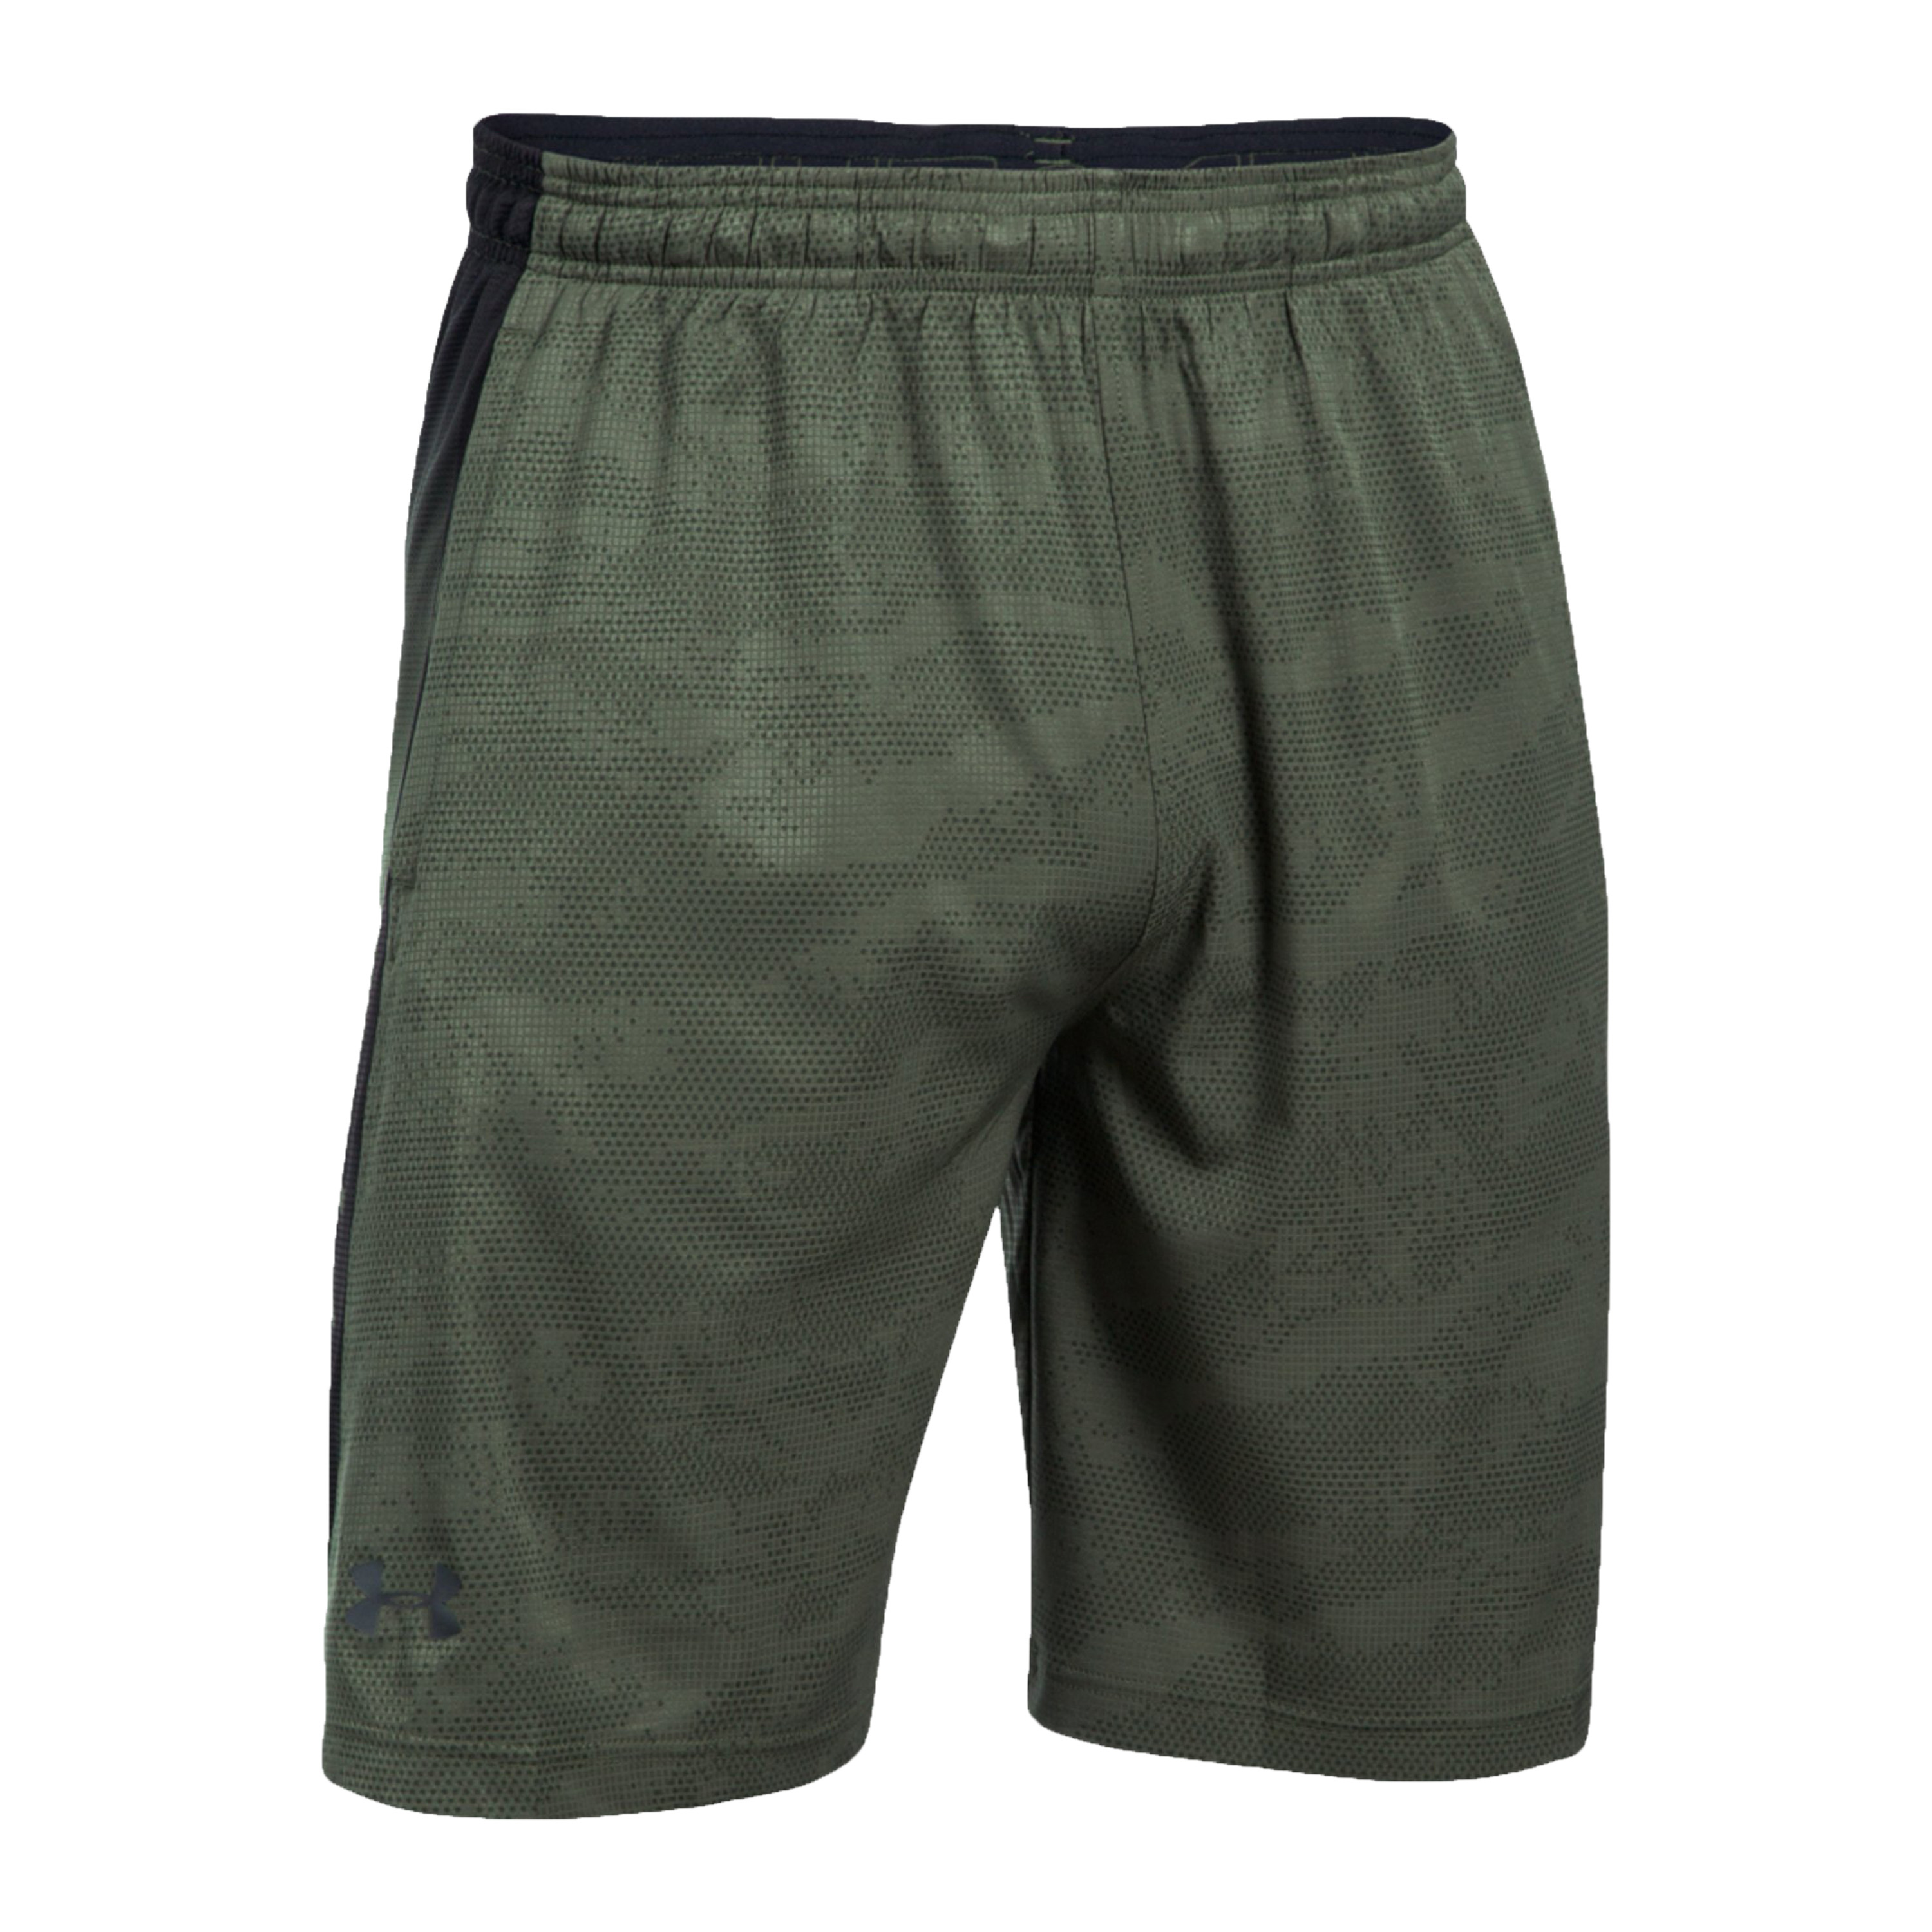 Under Armour Fitness Short Supervent Woven green camo